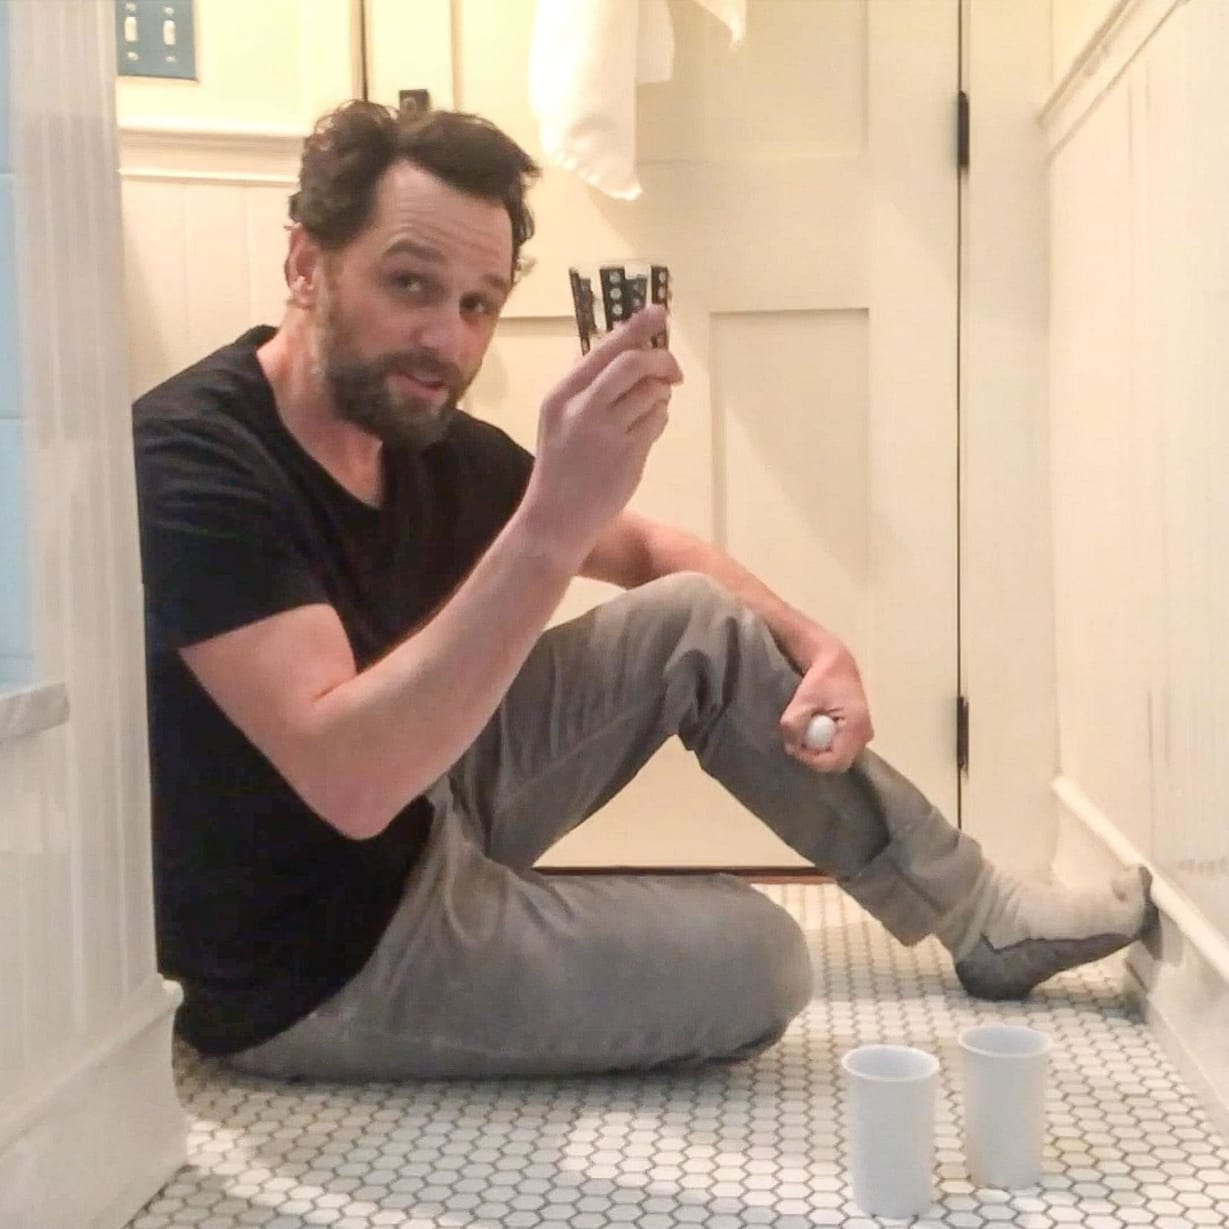 A man sitting on the floor in his bathroom holding up a glass.